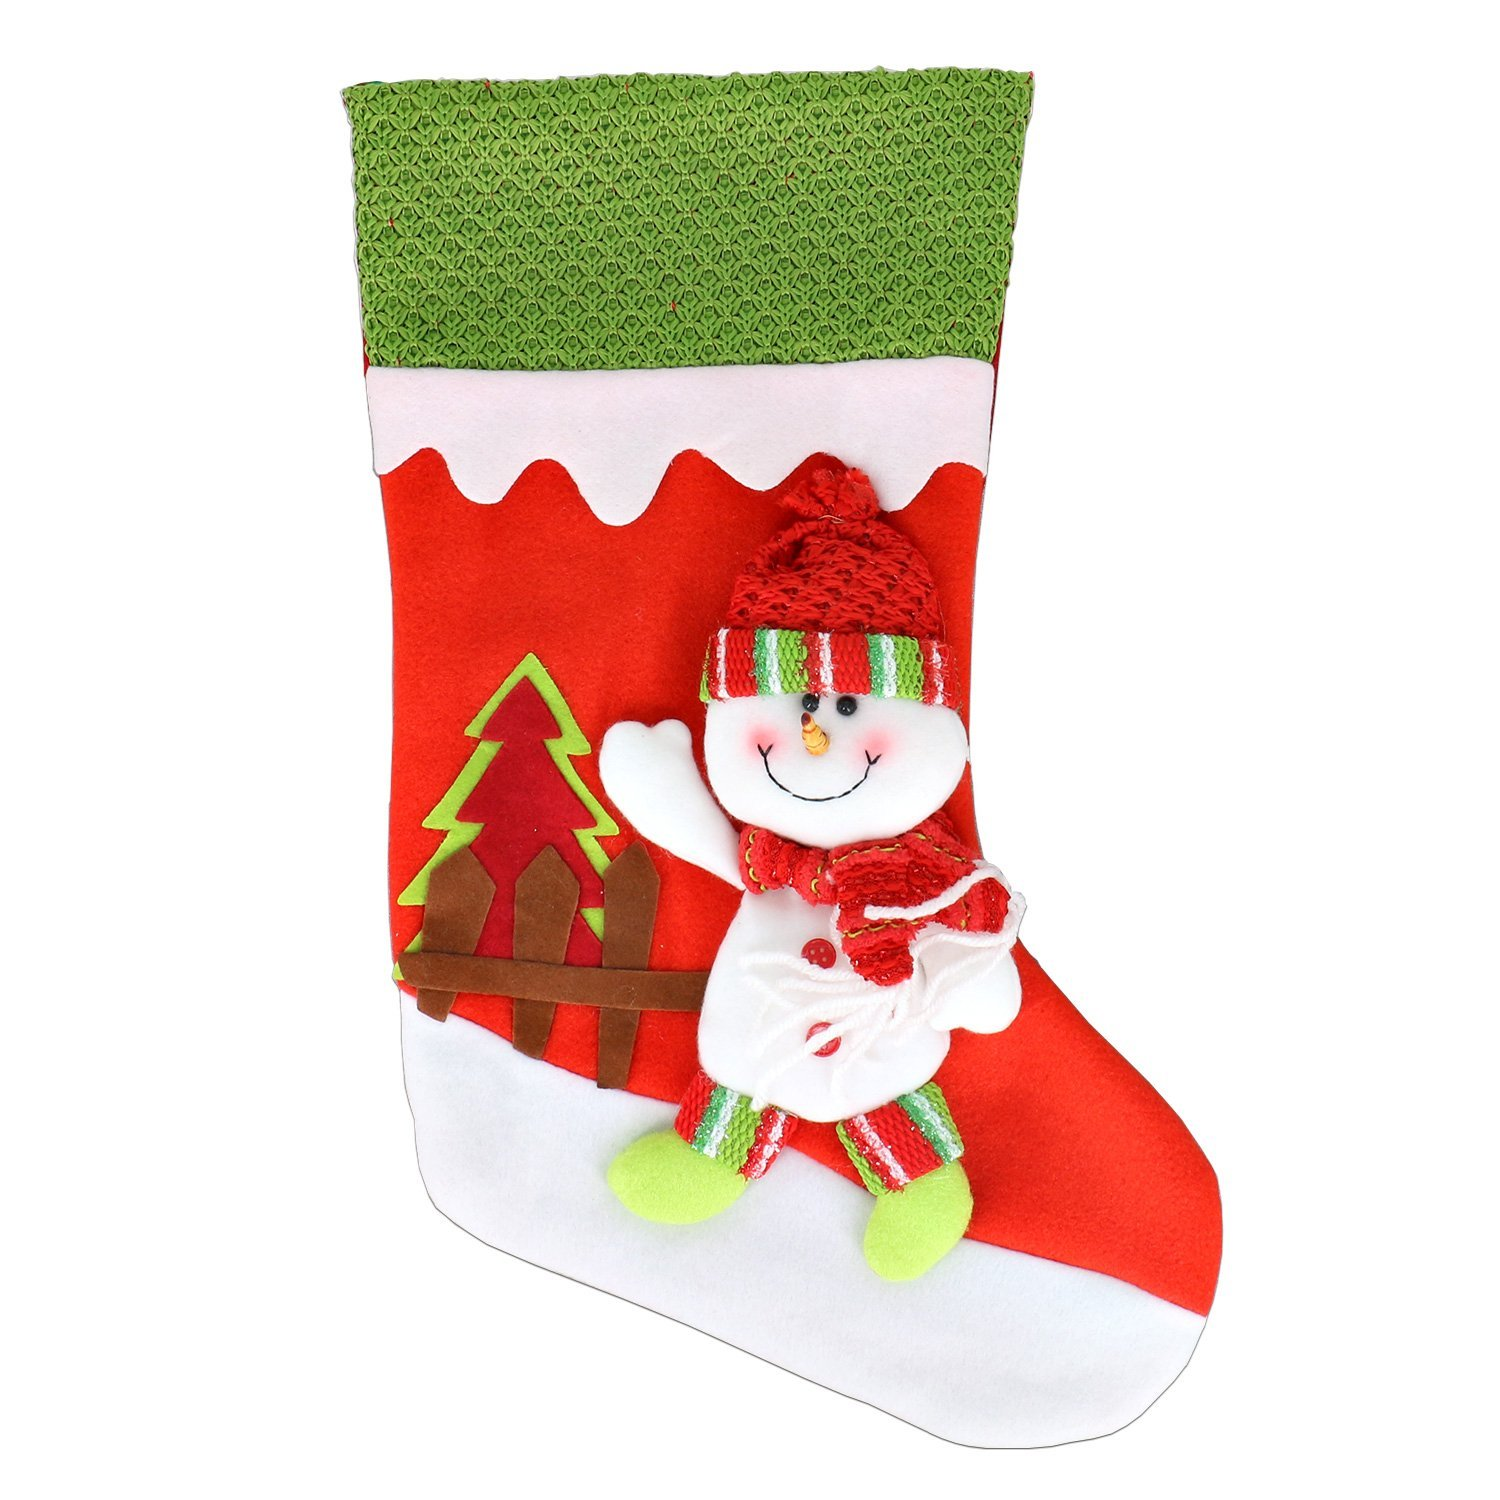 58121192584 Get Quotations · Personalized Christmas Stockings Holder